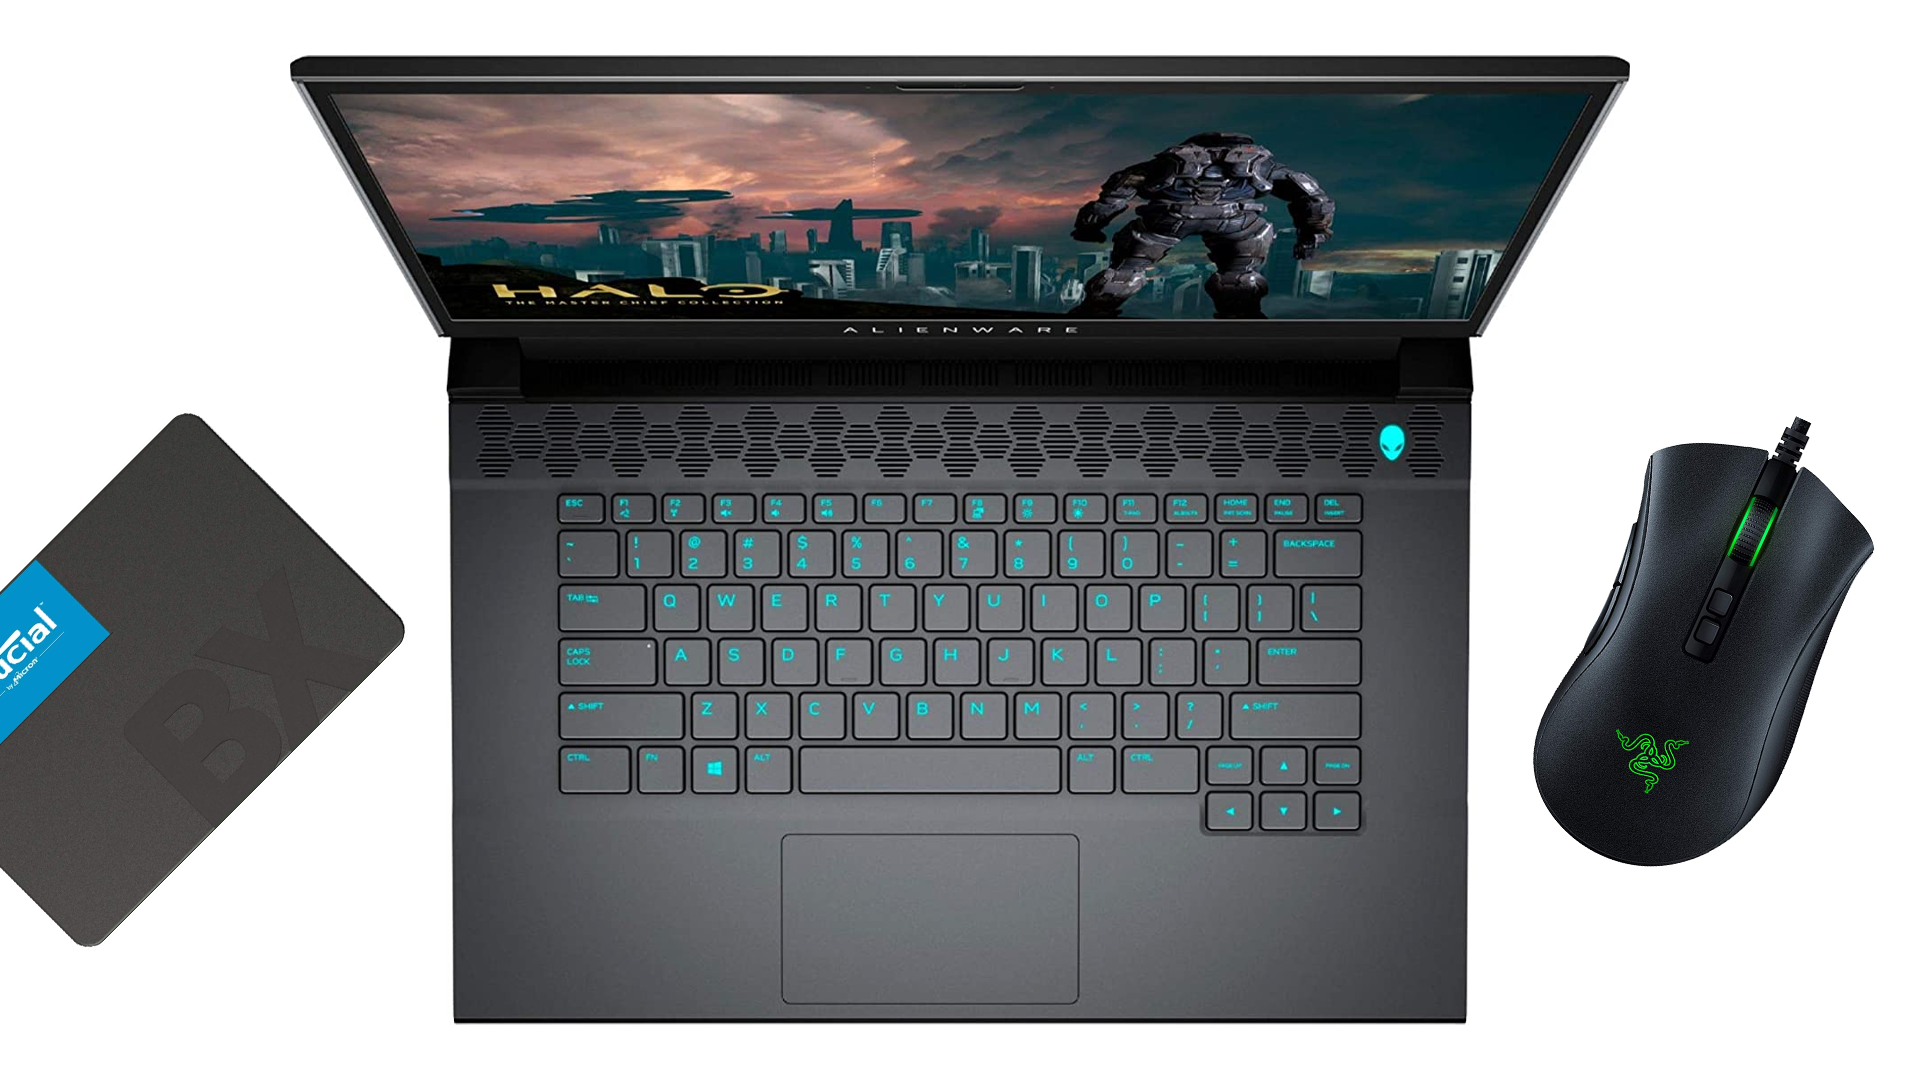 An Alienware laptop, Crucial SSD, and Razer Deathadder mouse.